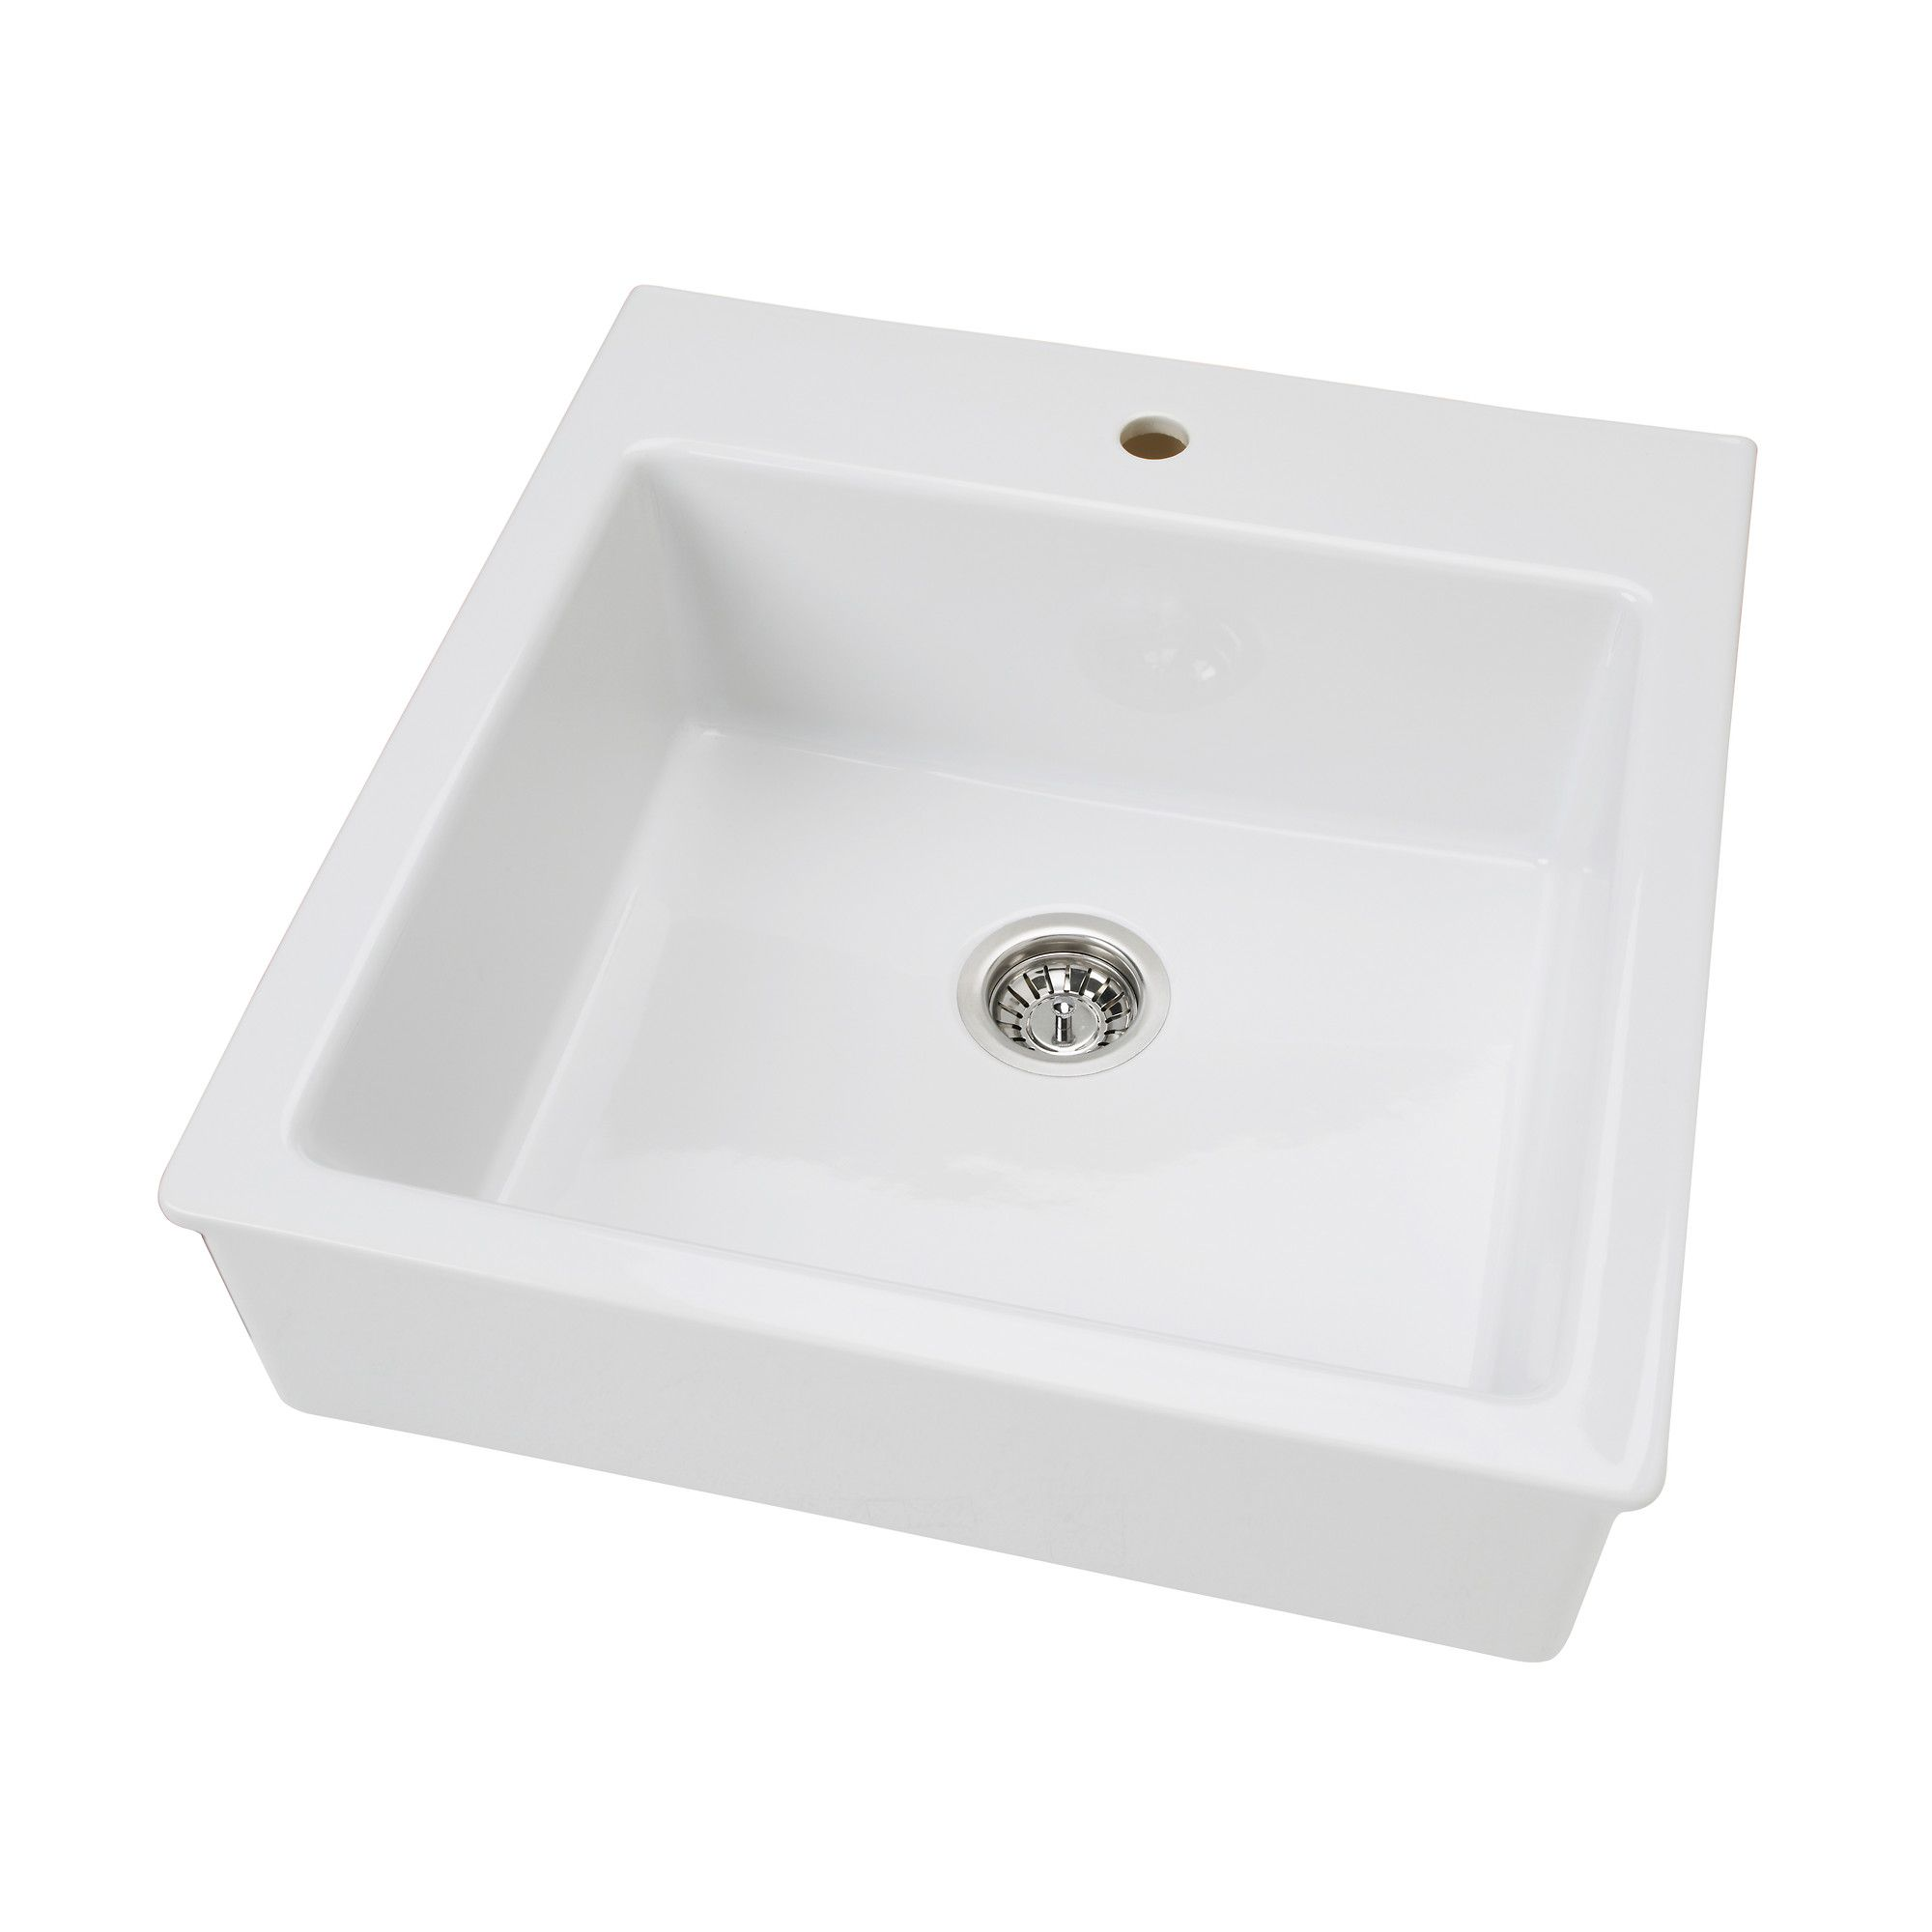 White apron front sink ikea - Ikea Domsj Sink Bowl 25 Year Limited Warranty Read About The